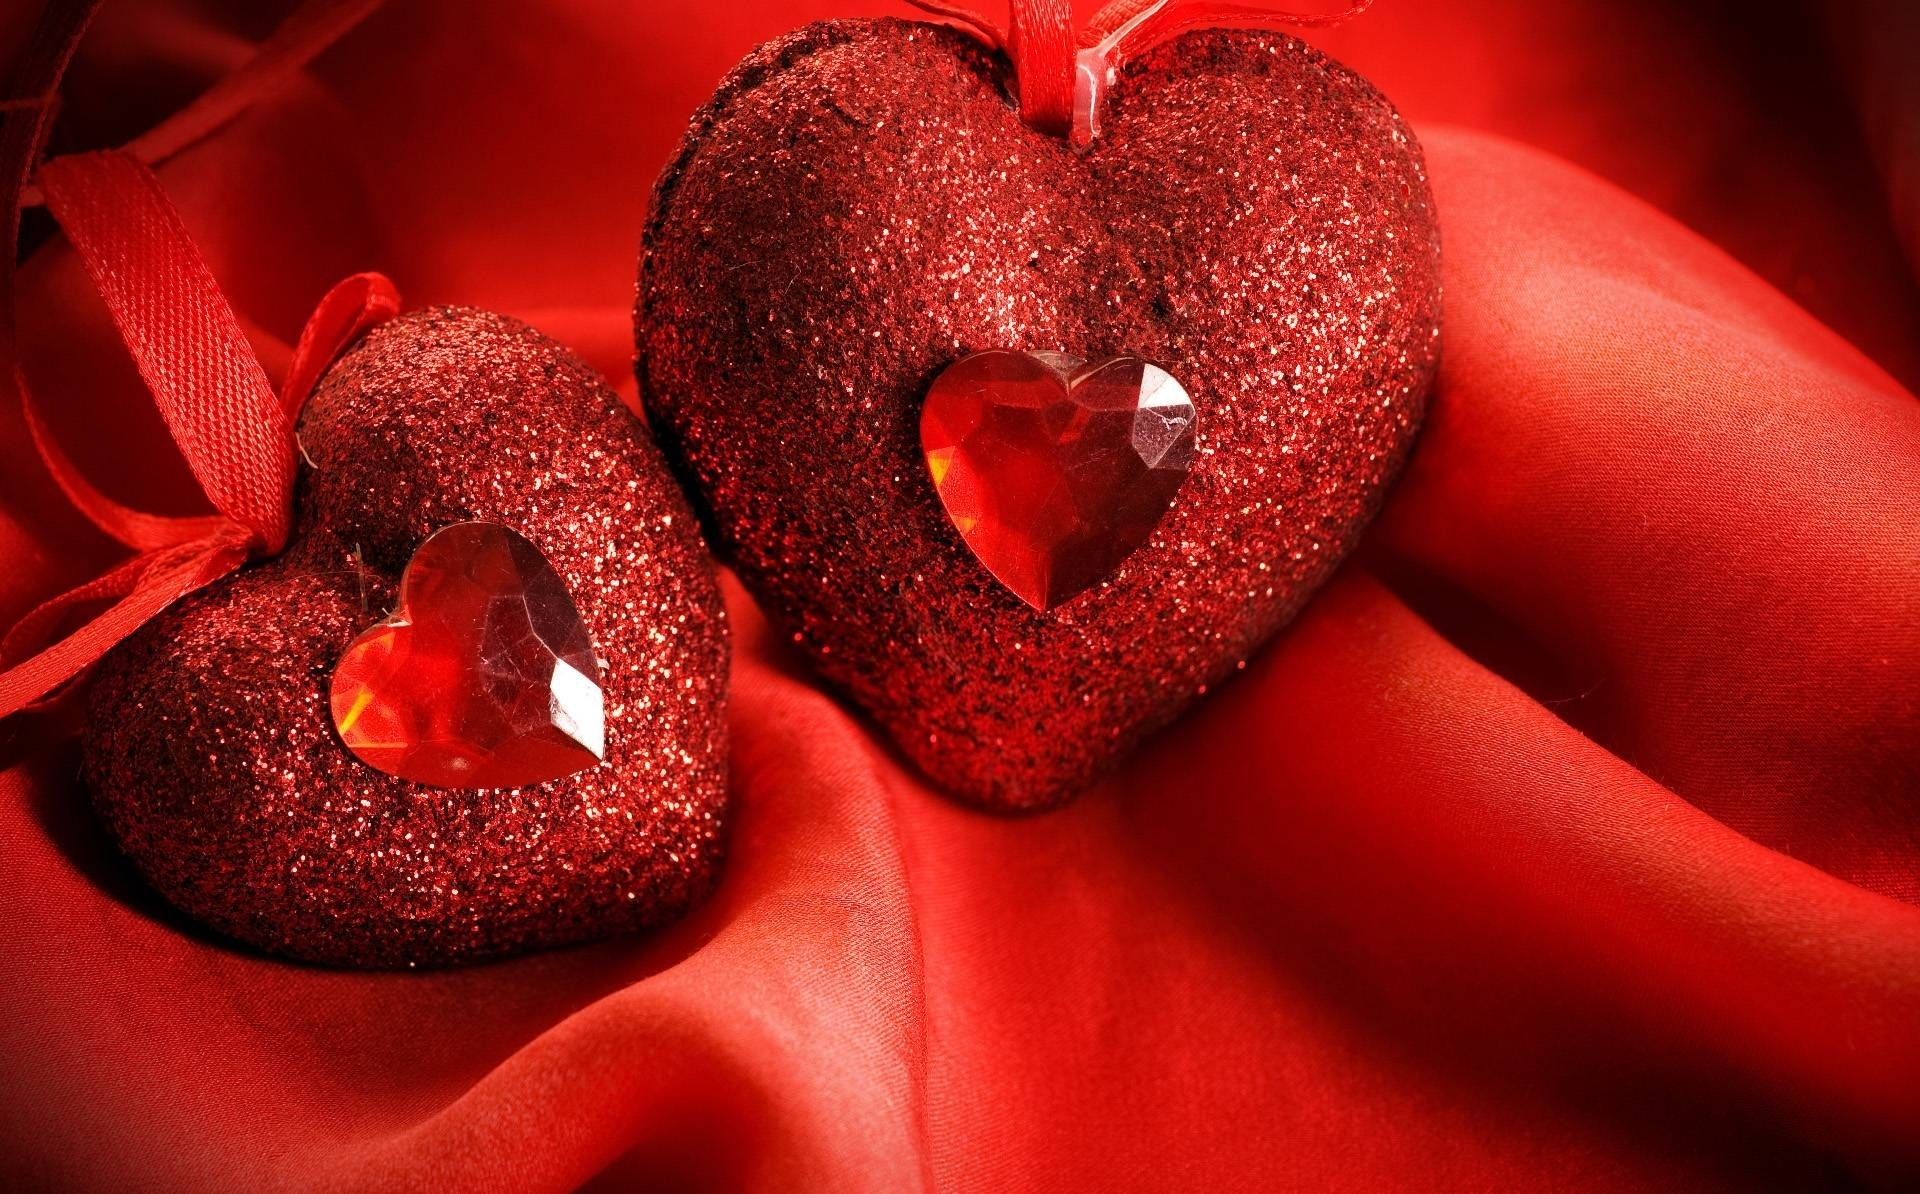 beautiful heart images free download | art and photography